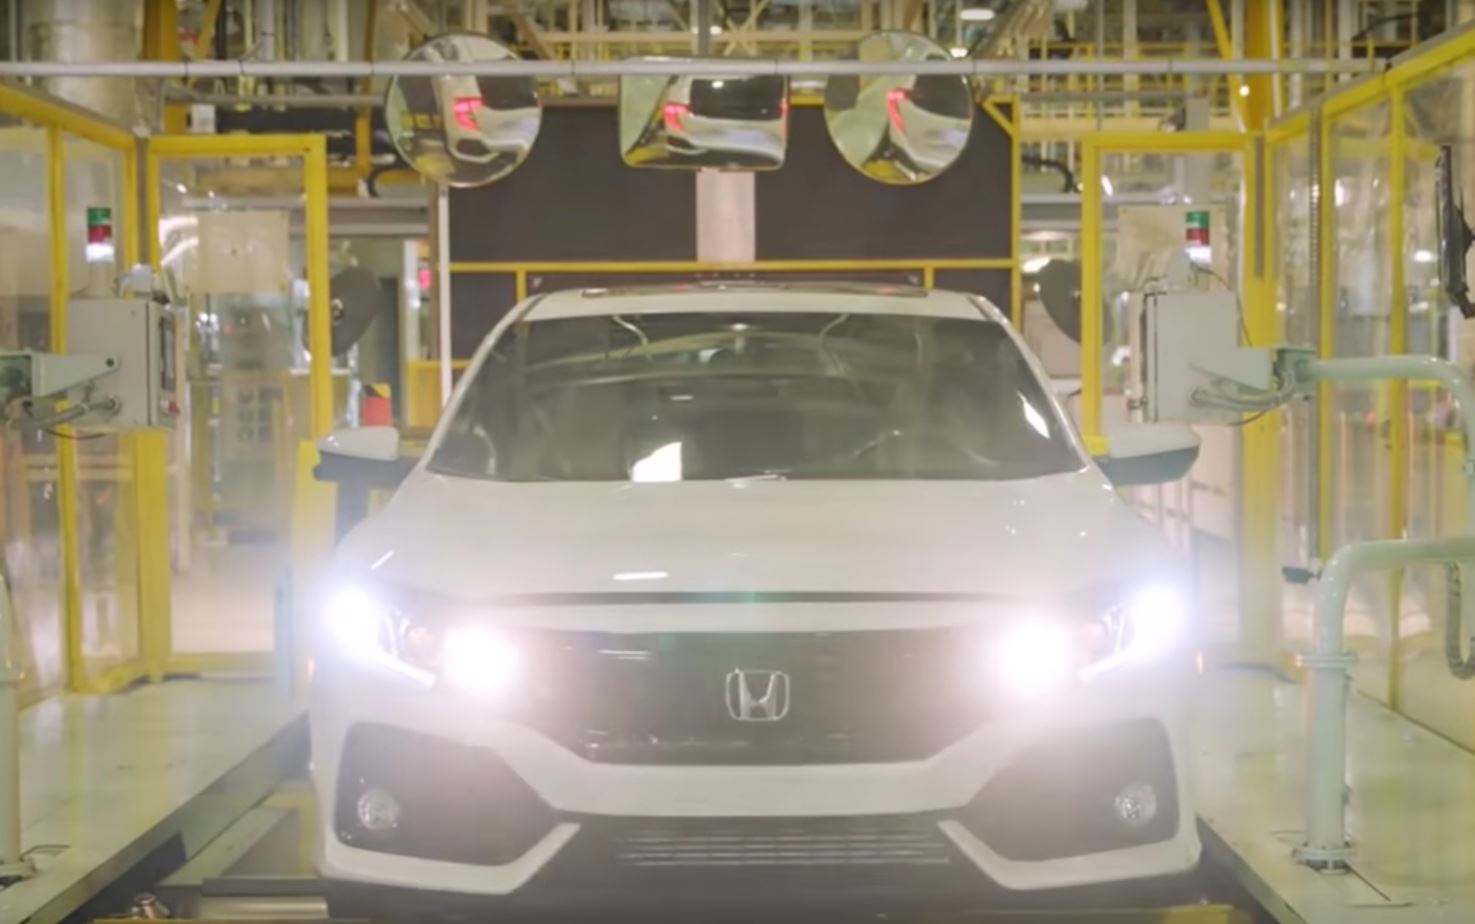 2017 Honda Civic X Hatchback Enters Production In The Uk Here S The Video 111415 1